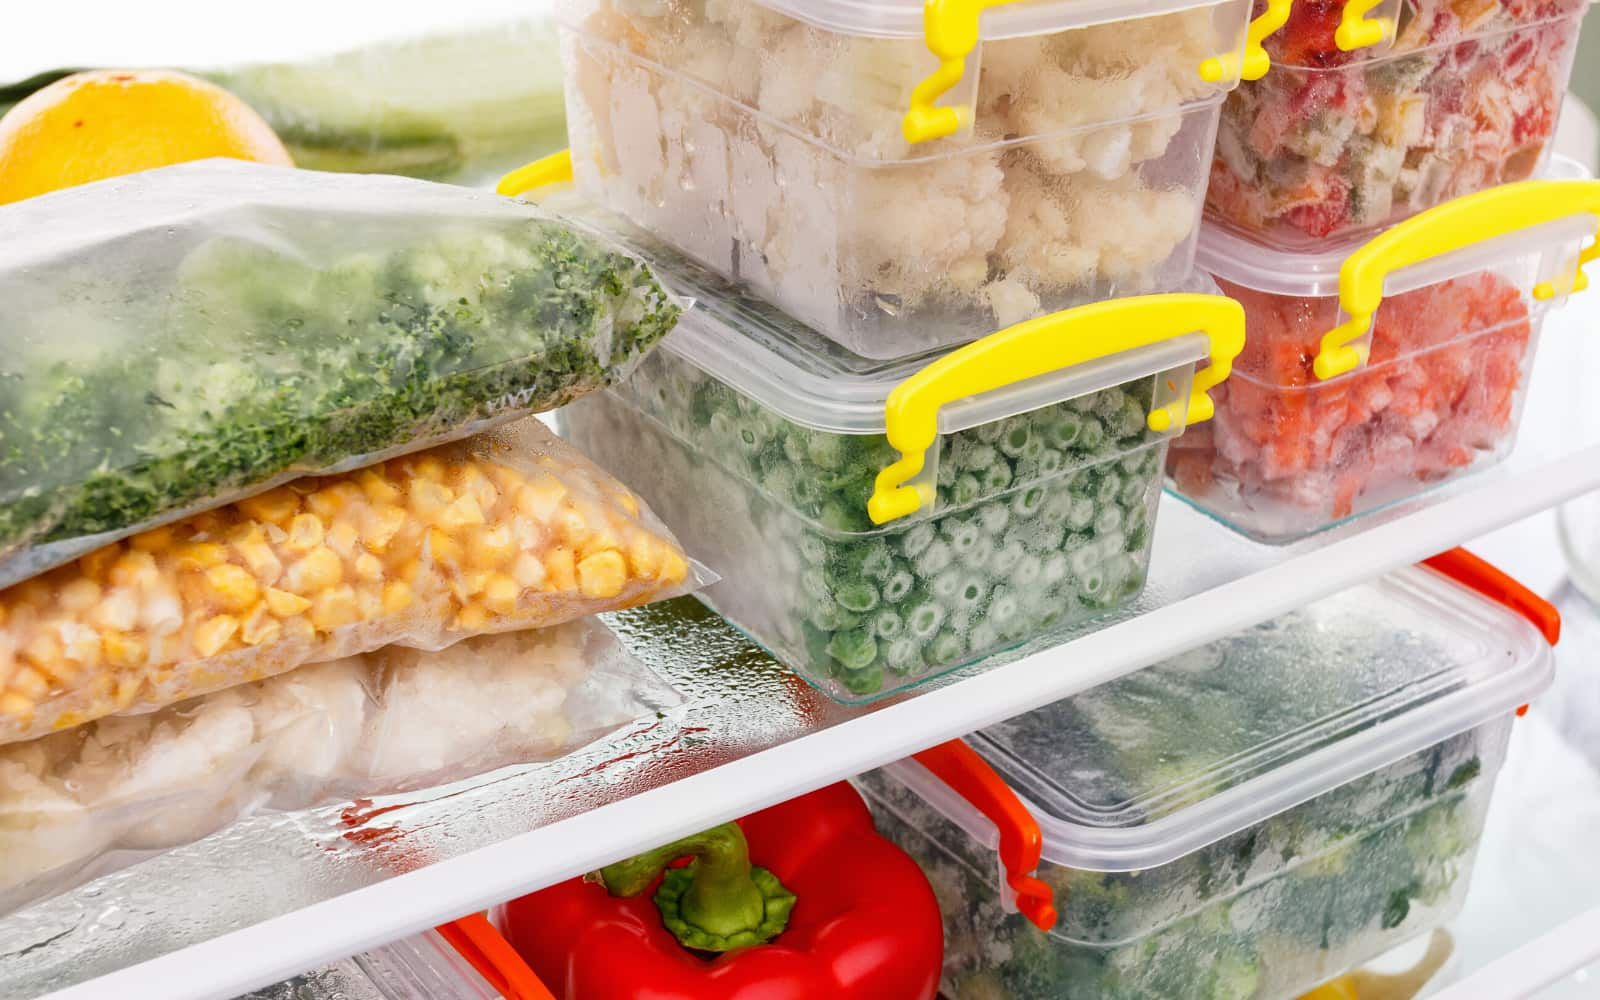 Foods to Freeze: Your Guide to Smart Shopping